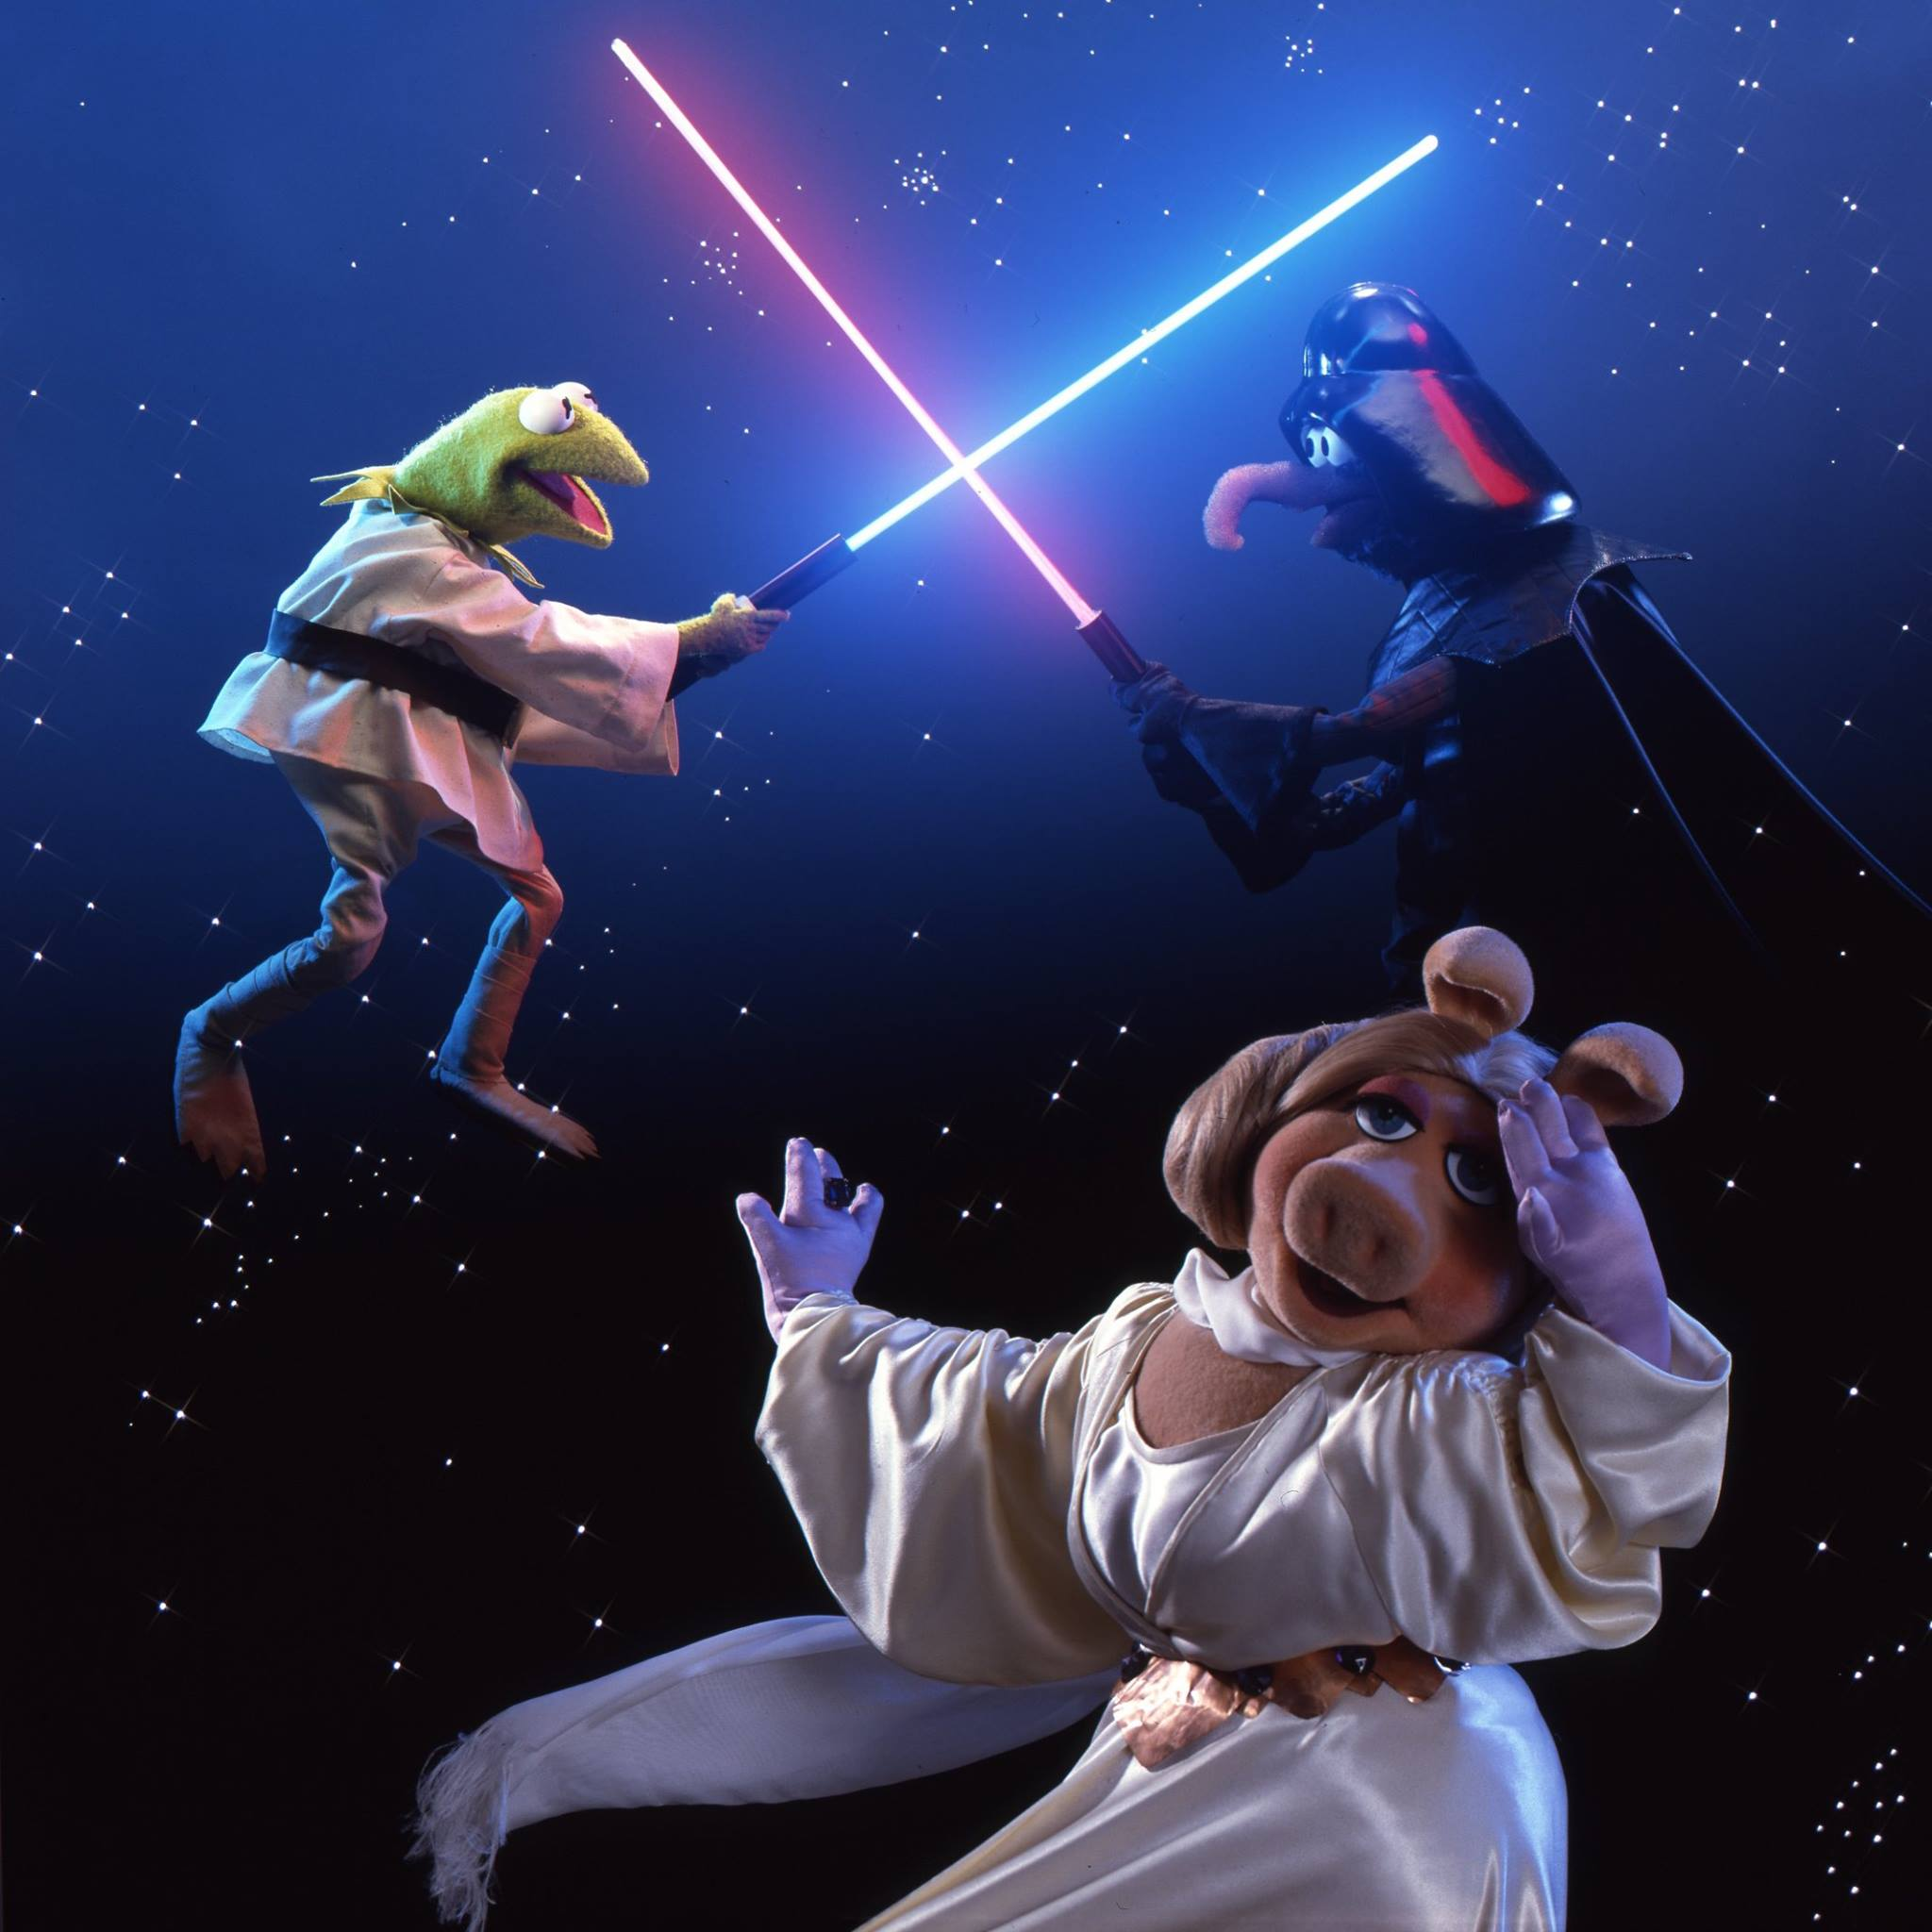 Muppets and Star Wars